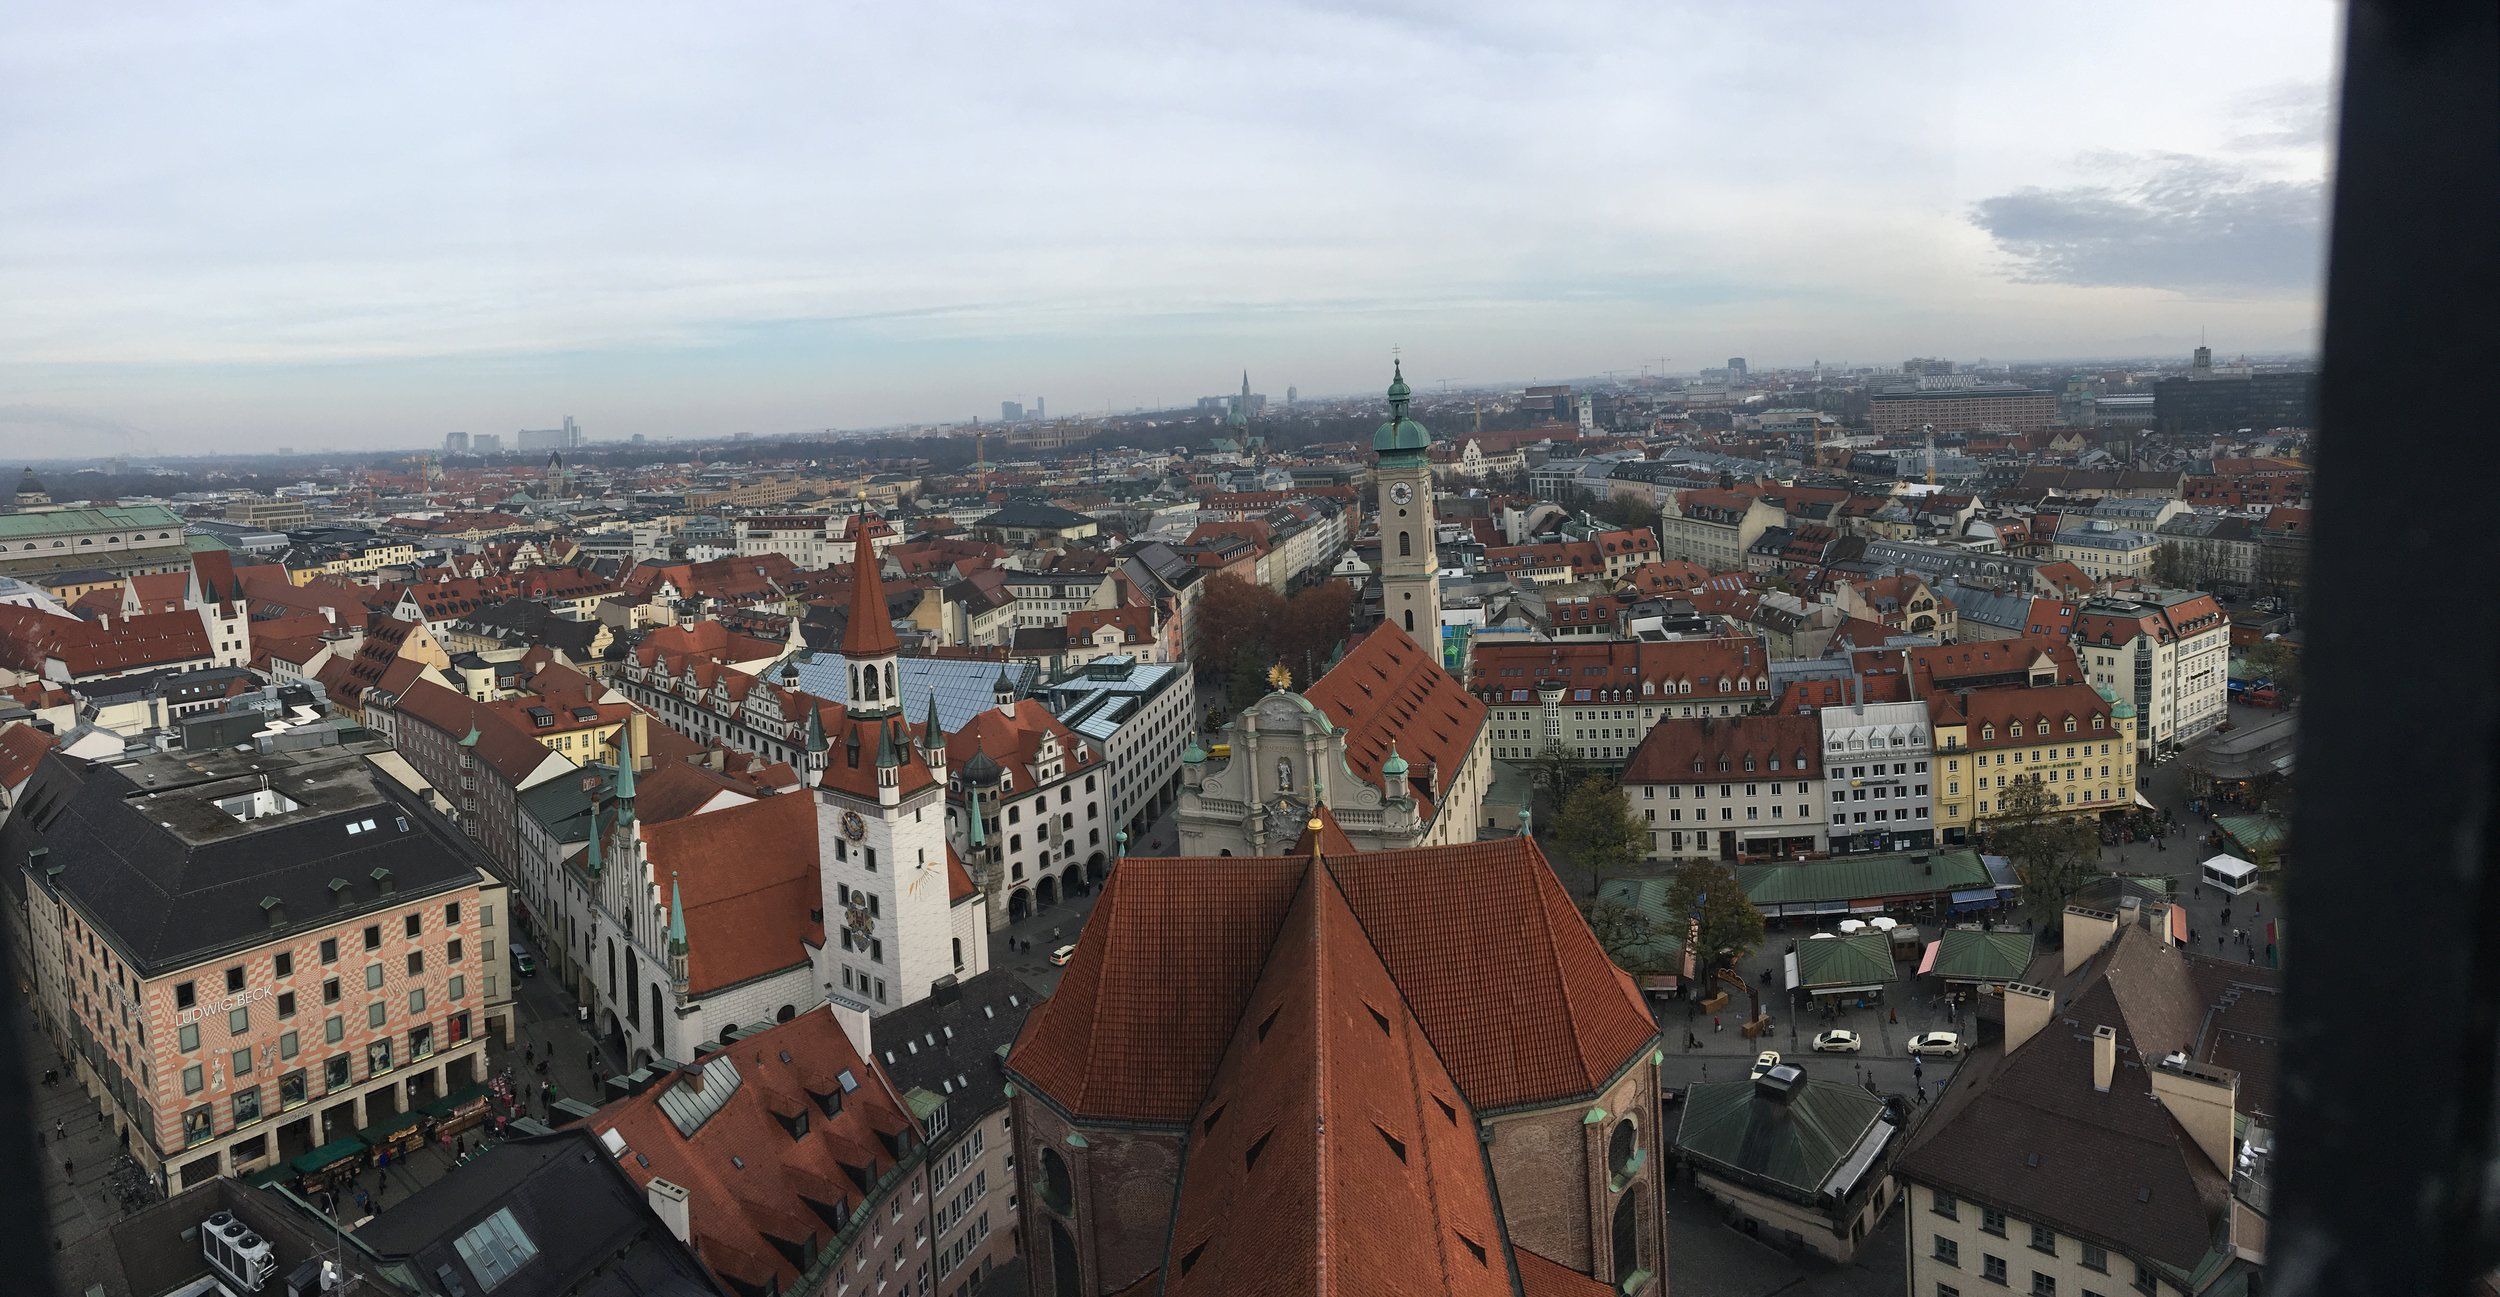 A view of Munich from St. Peter's Church